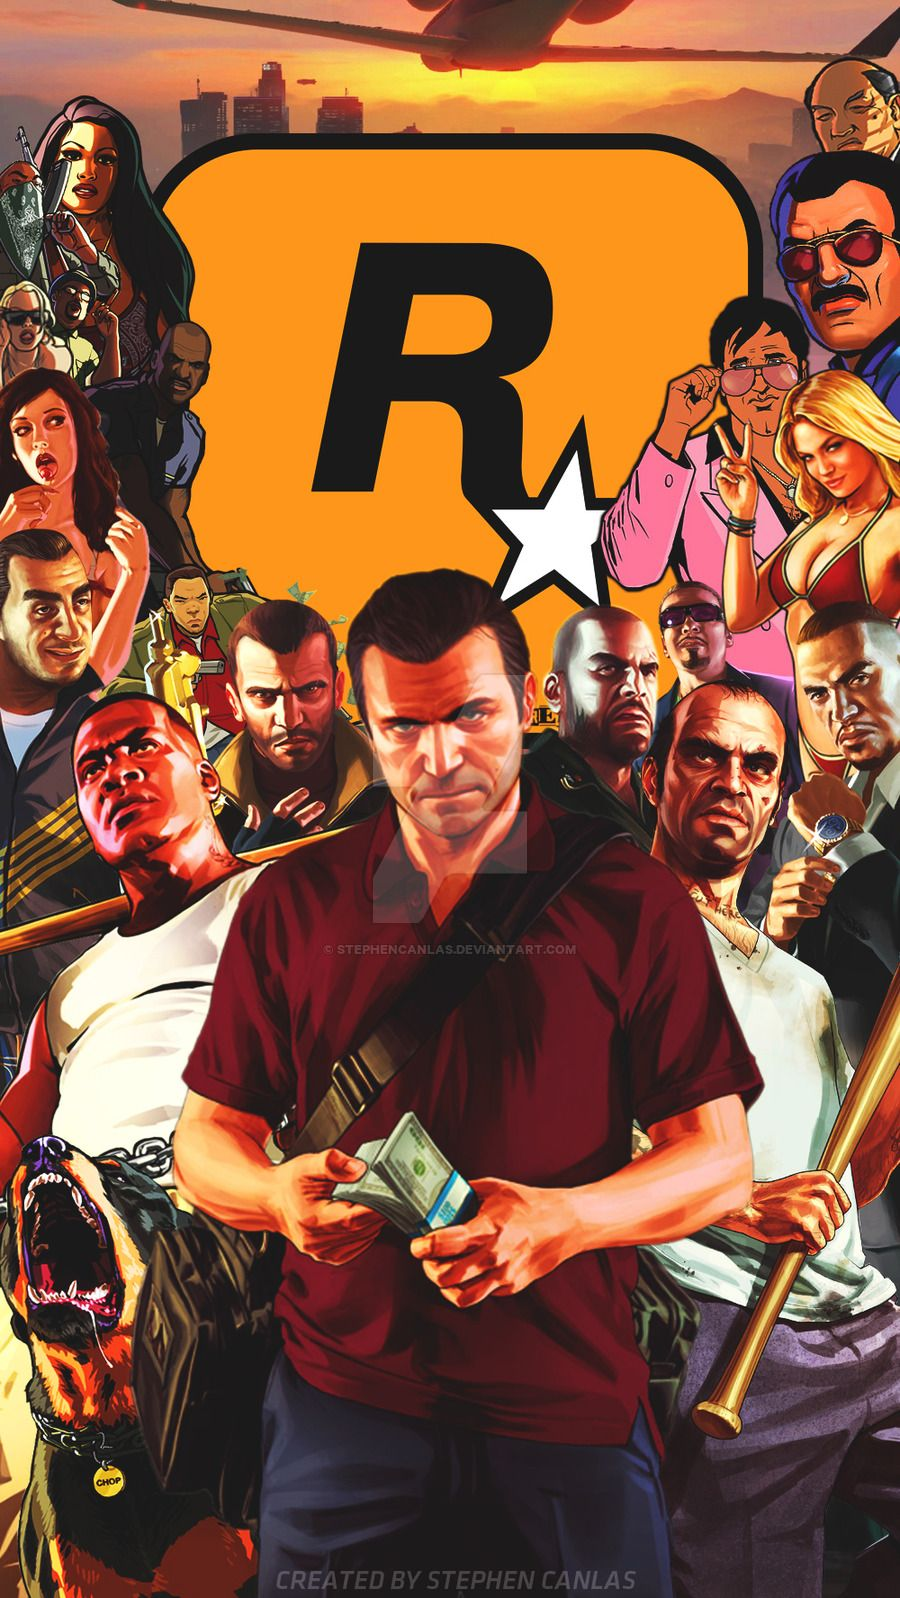 gta 5 iphone wallpaper - wallpapersafari | best games wallpapers